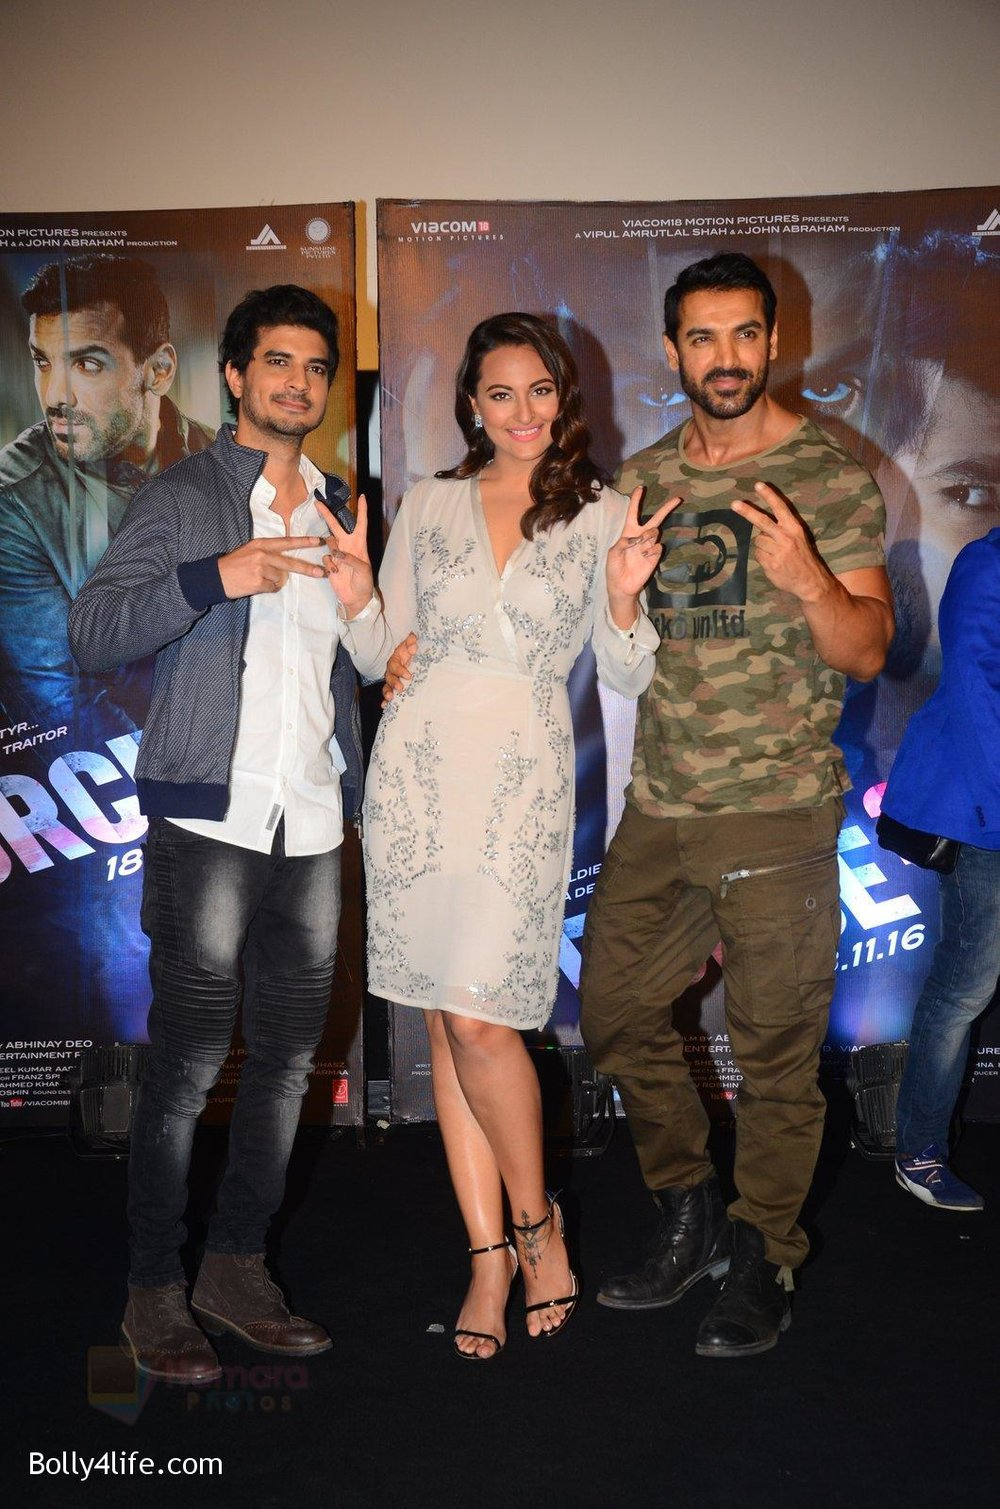 John-Abraham-Sonakshi-Sinha-Tahir-Bhasin-at-Force-2-trailer-launch-in-Mumbai-on-29th-Sept-2016-333.jpg